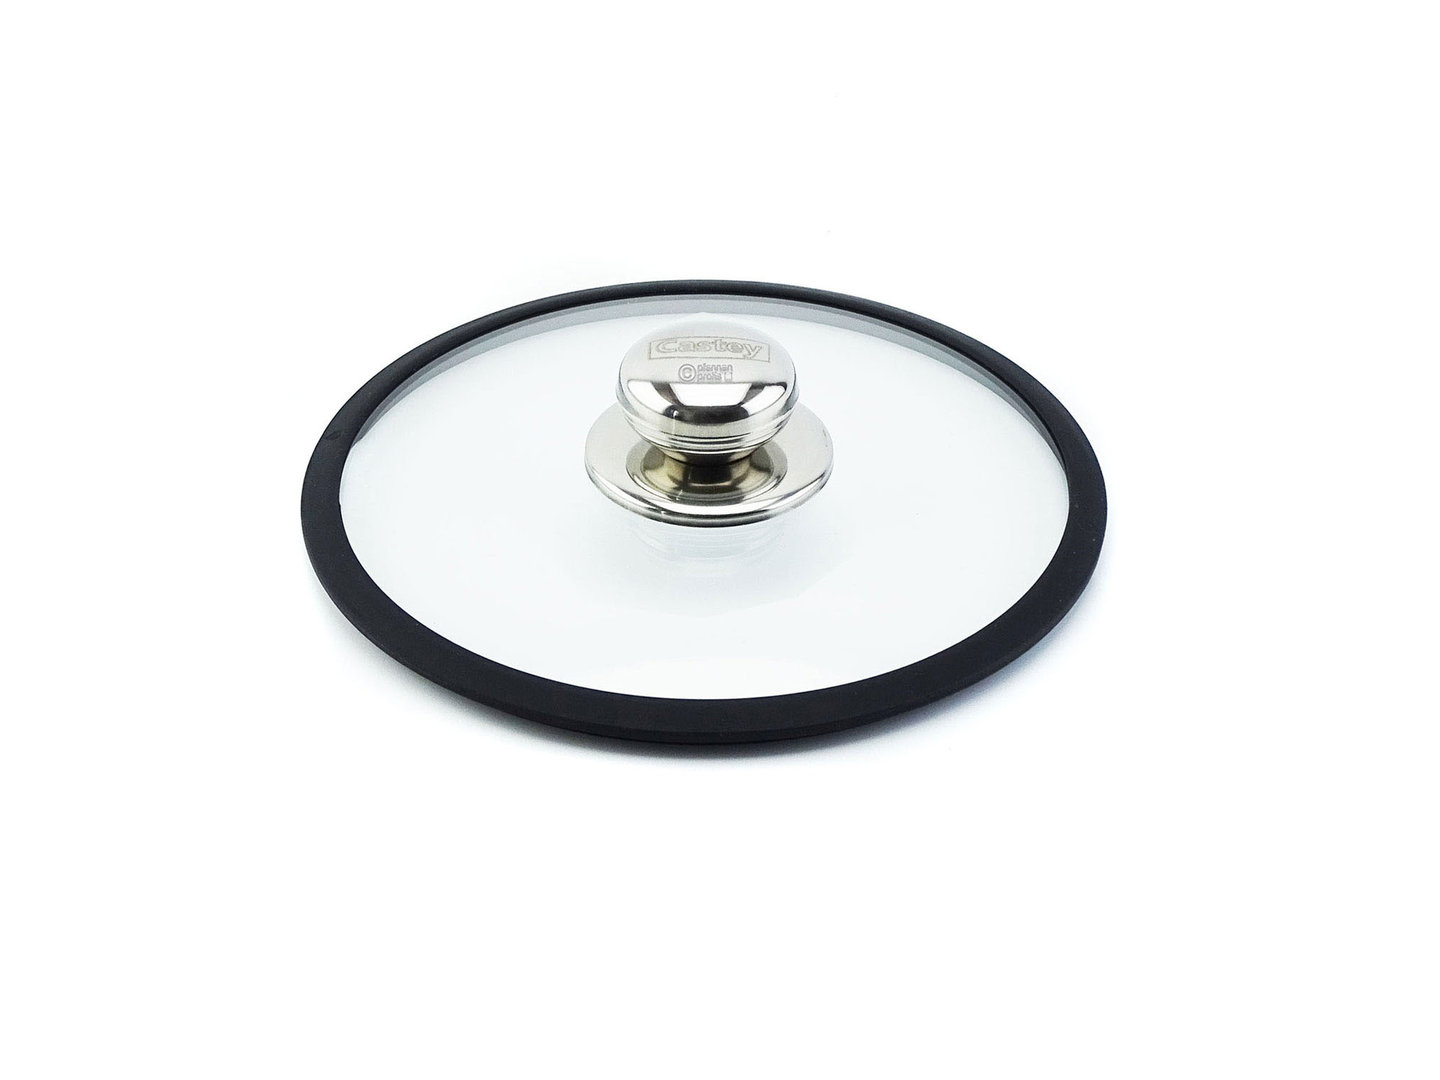 CASTEY ovenproof glass lid 18 cm with silicone rim